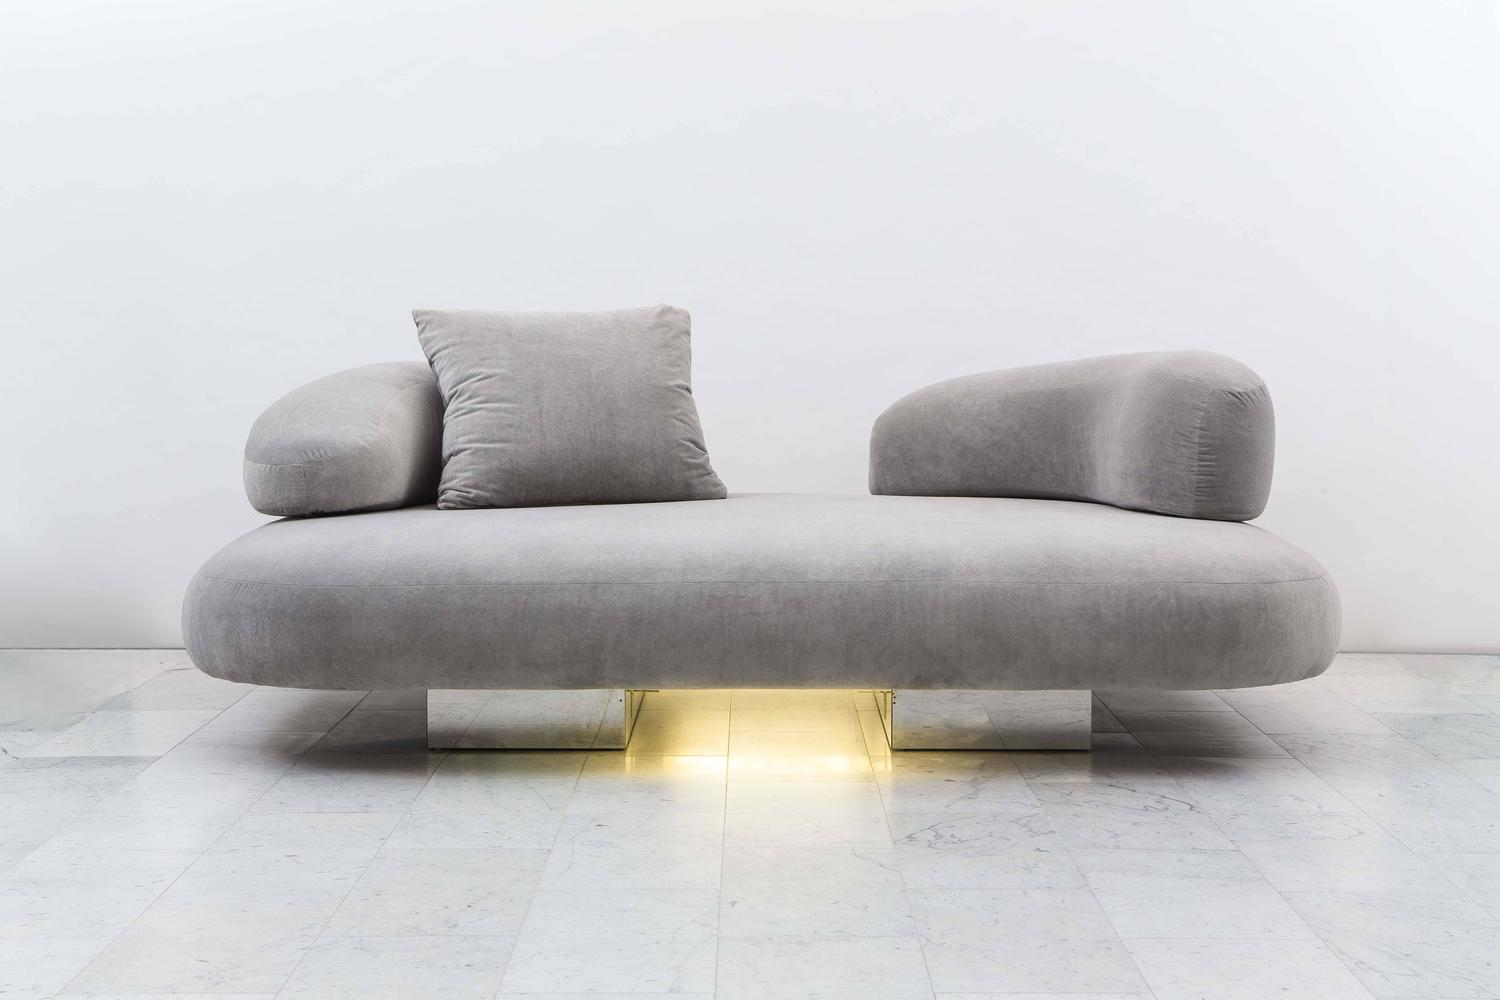 cloud sofa for sale new design modern bonded leather bed custom pillow by paul evans usa 1979